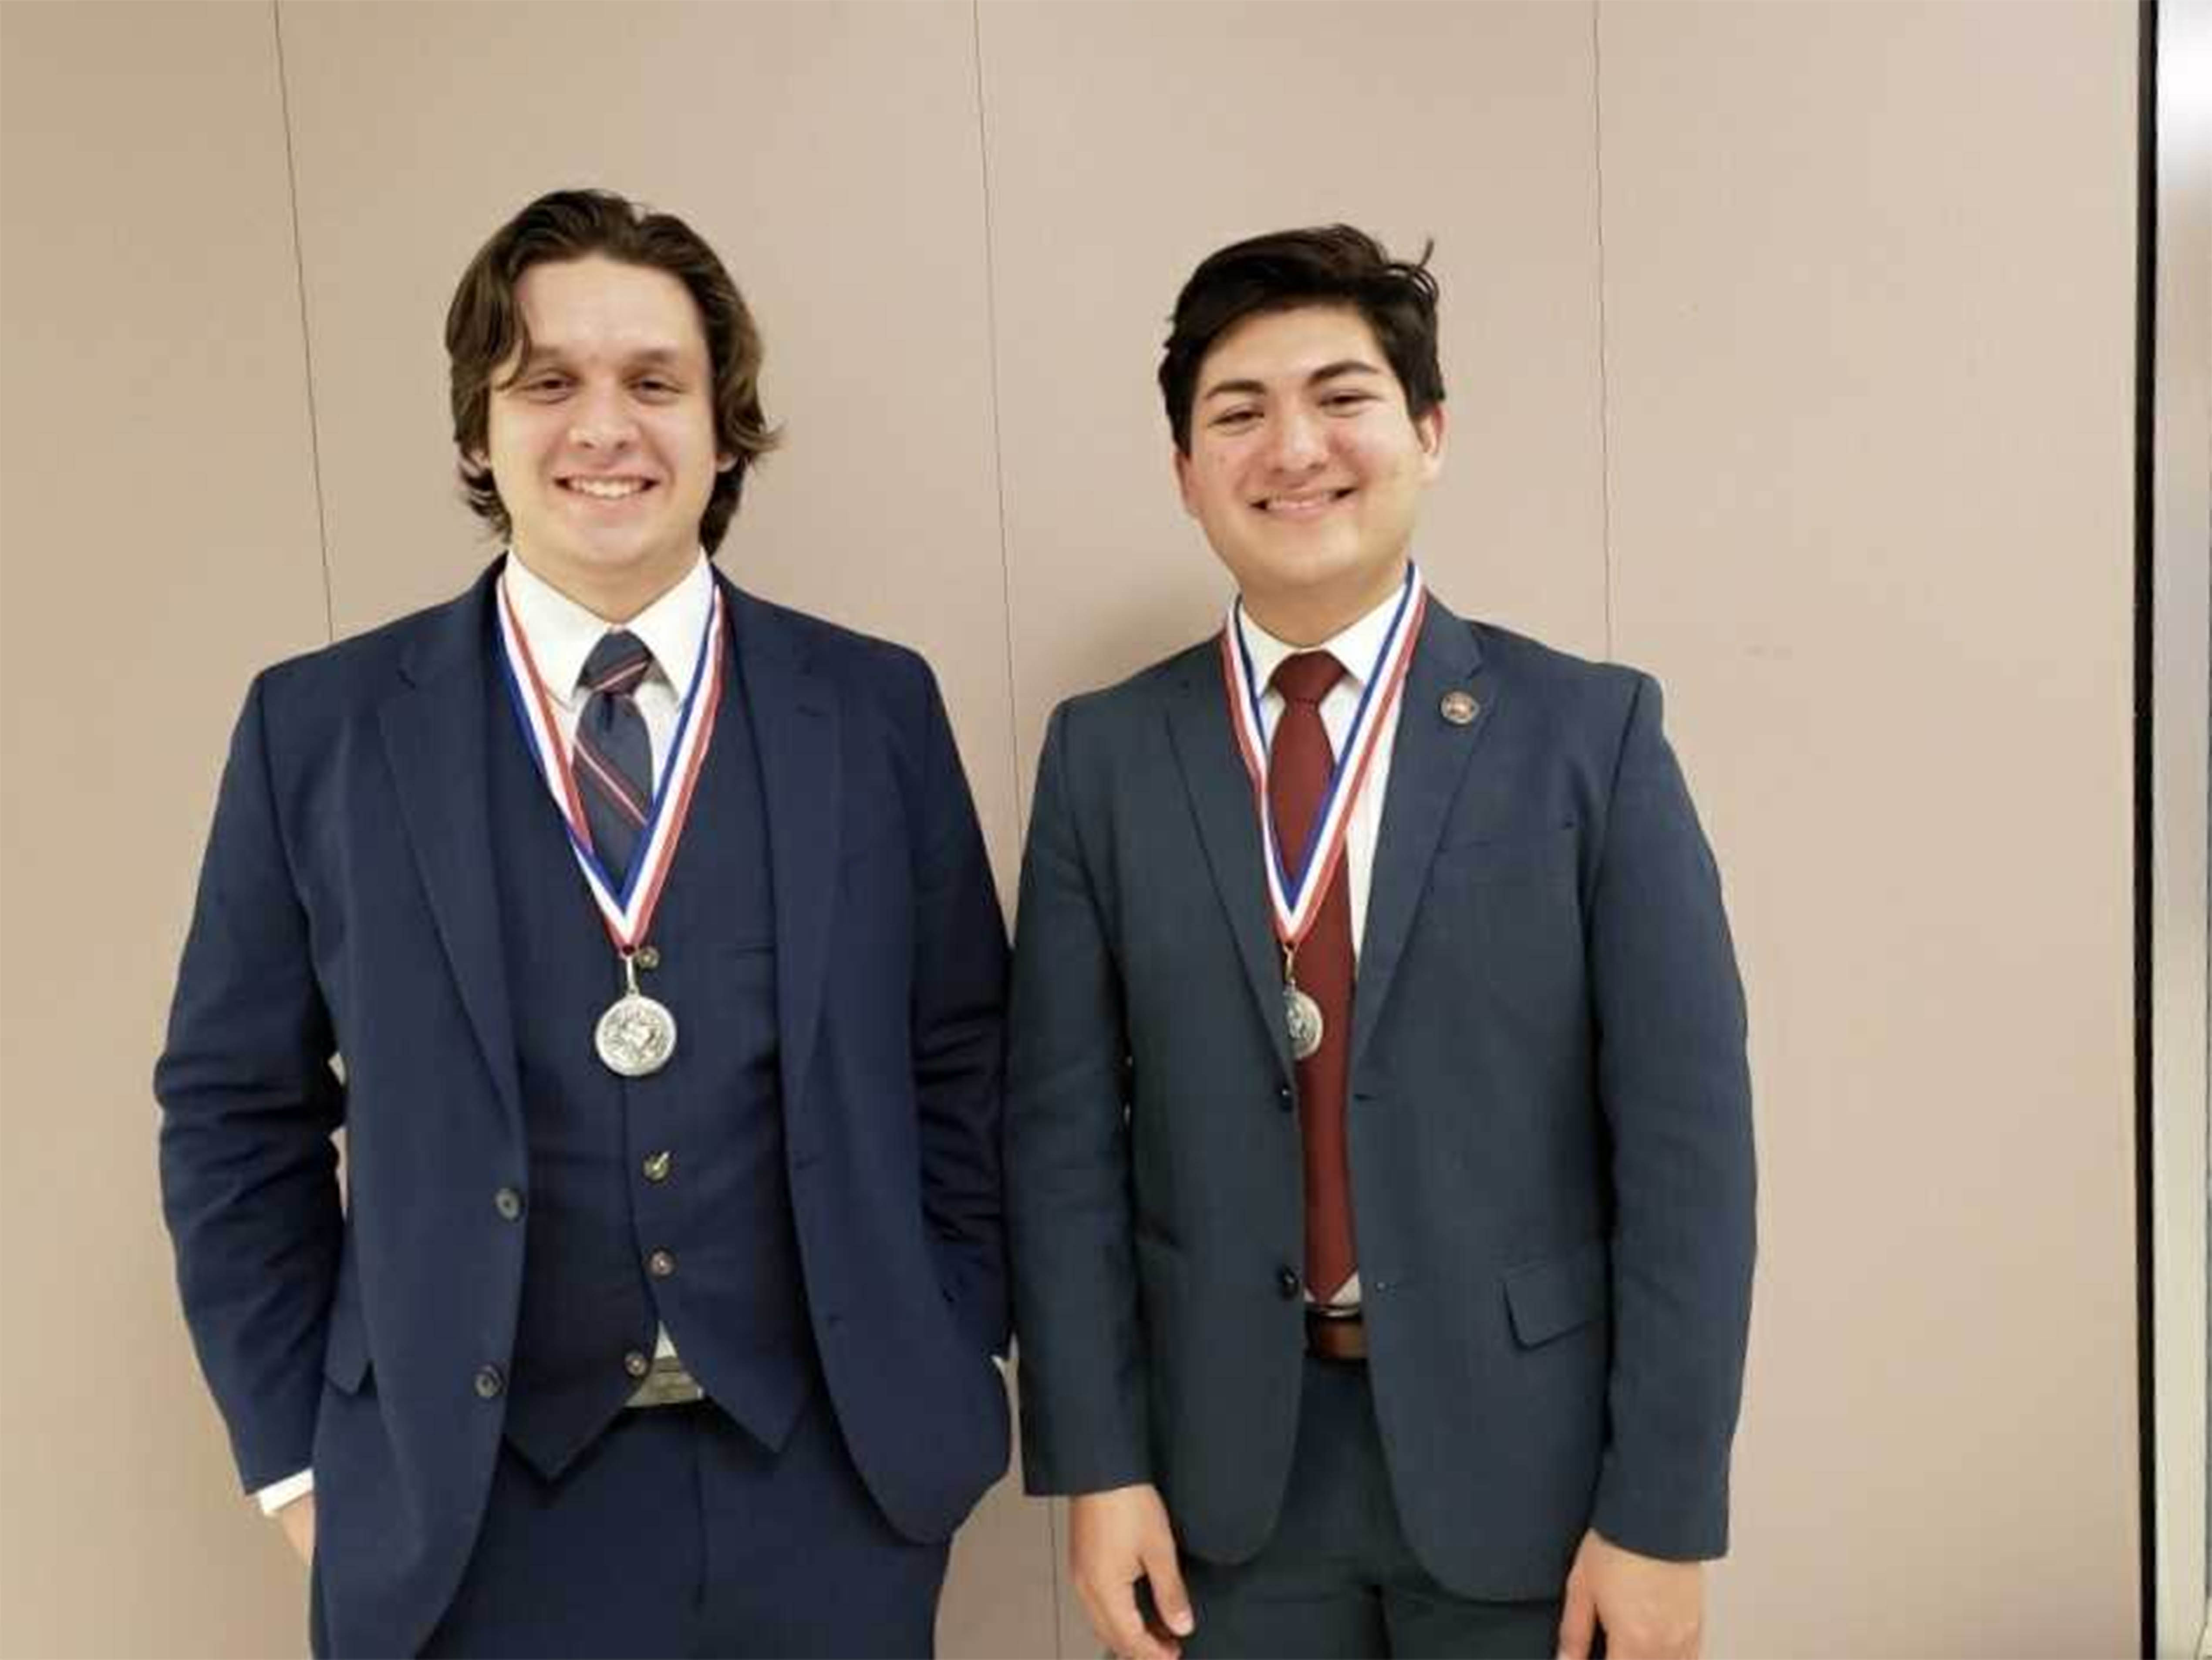 Two-time state qualifying team to compete against best debaters in Texas